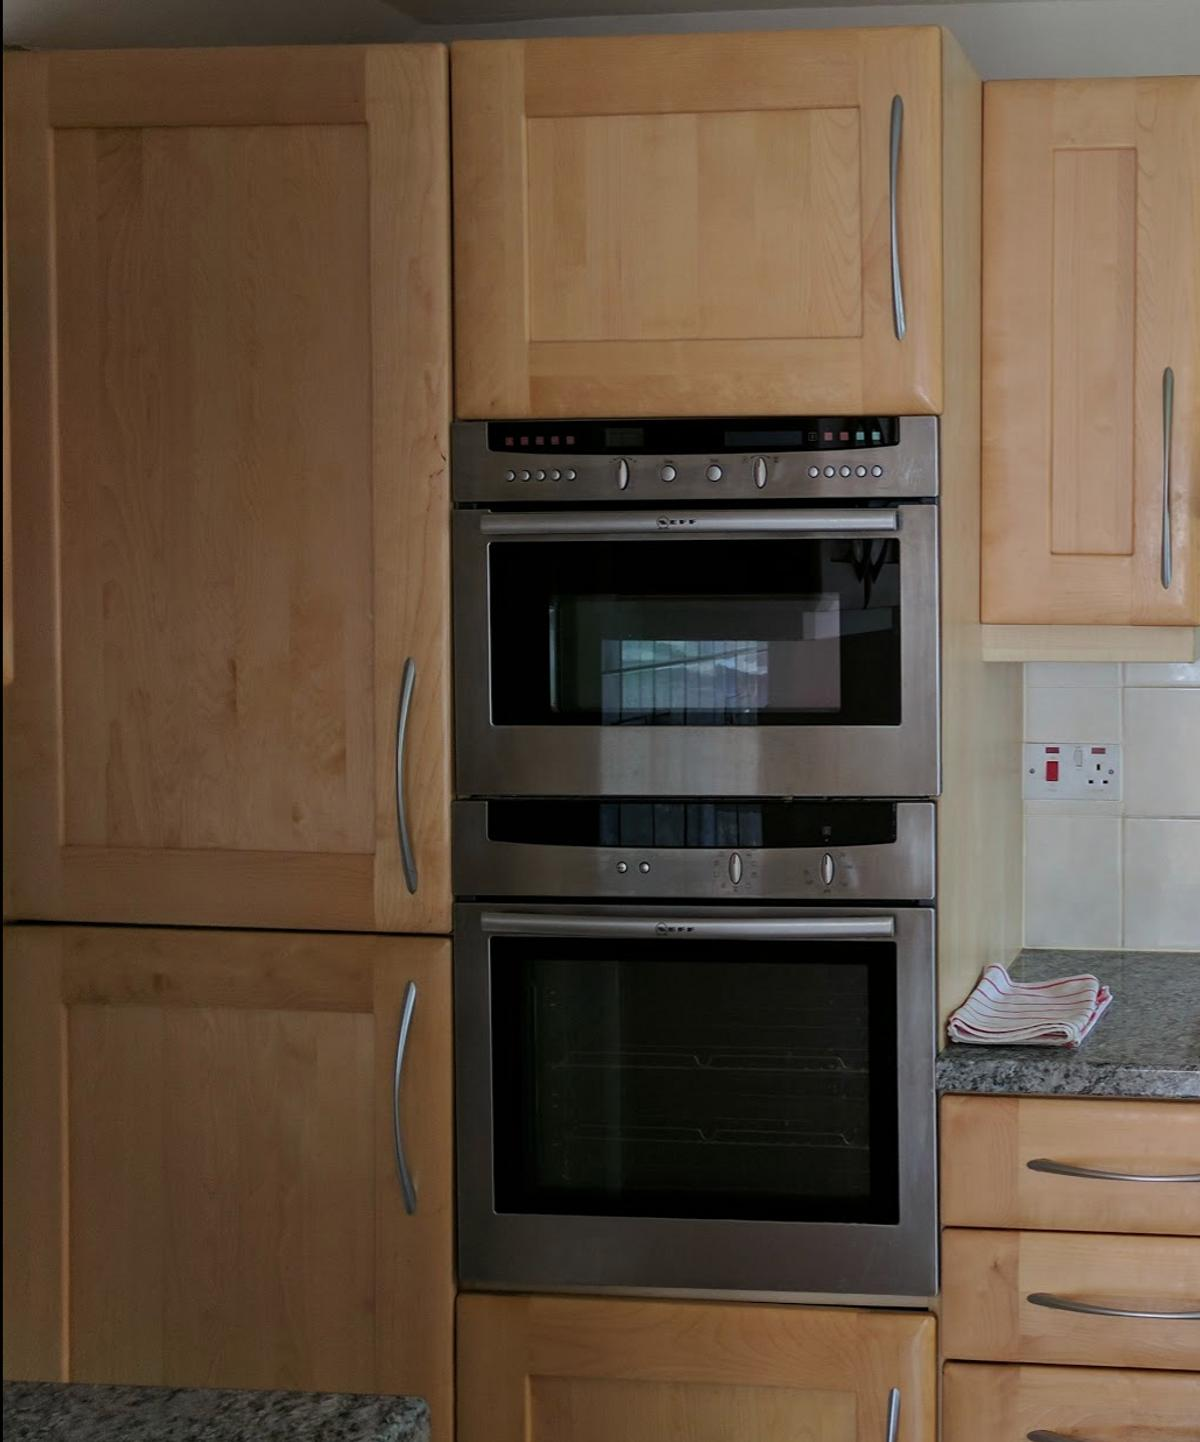 Neff Oven & Microwave